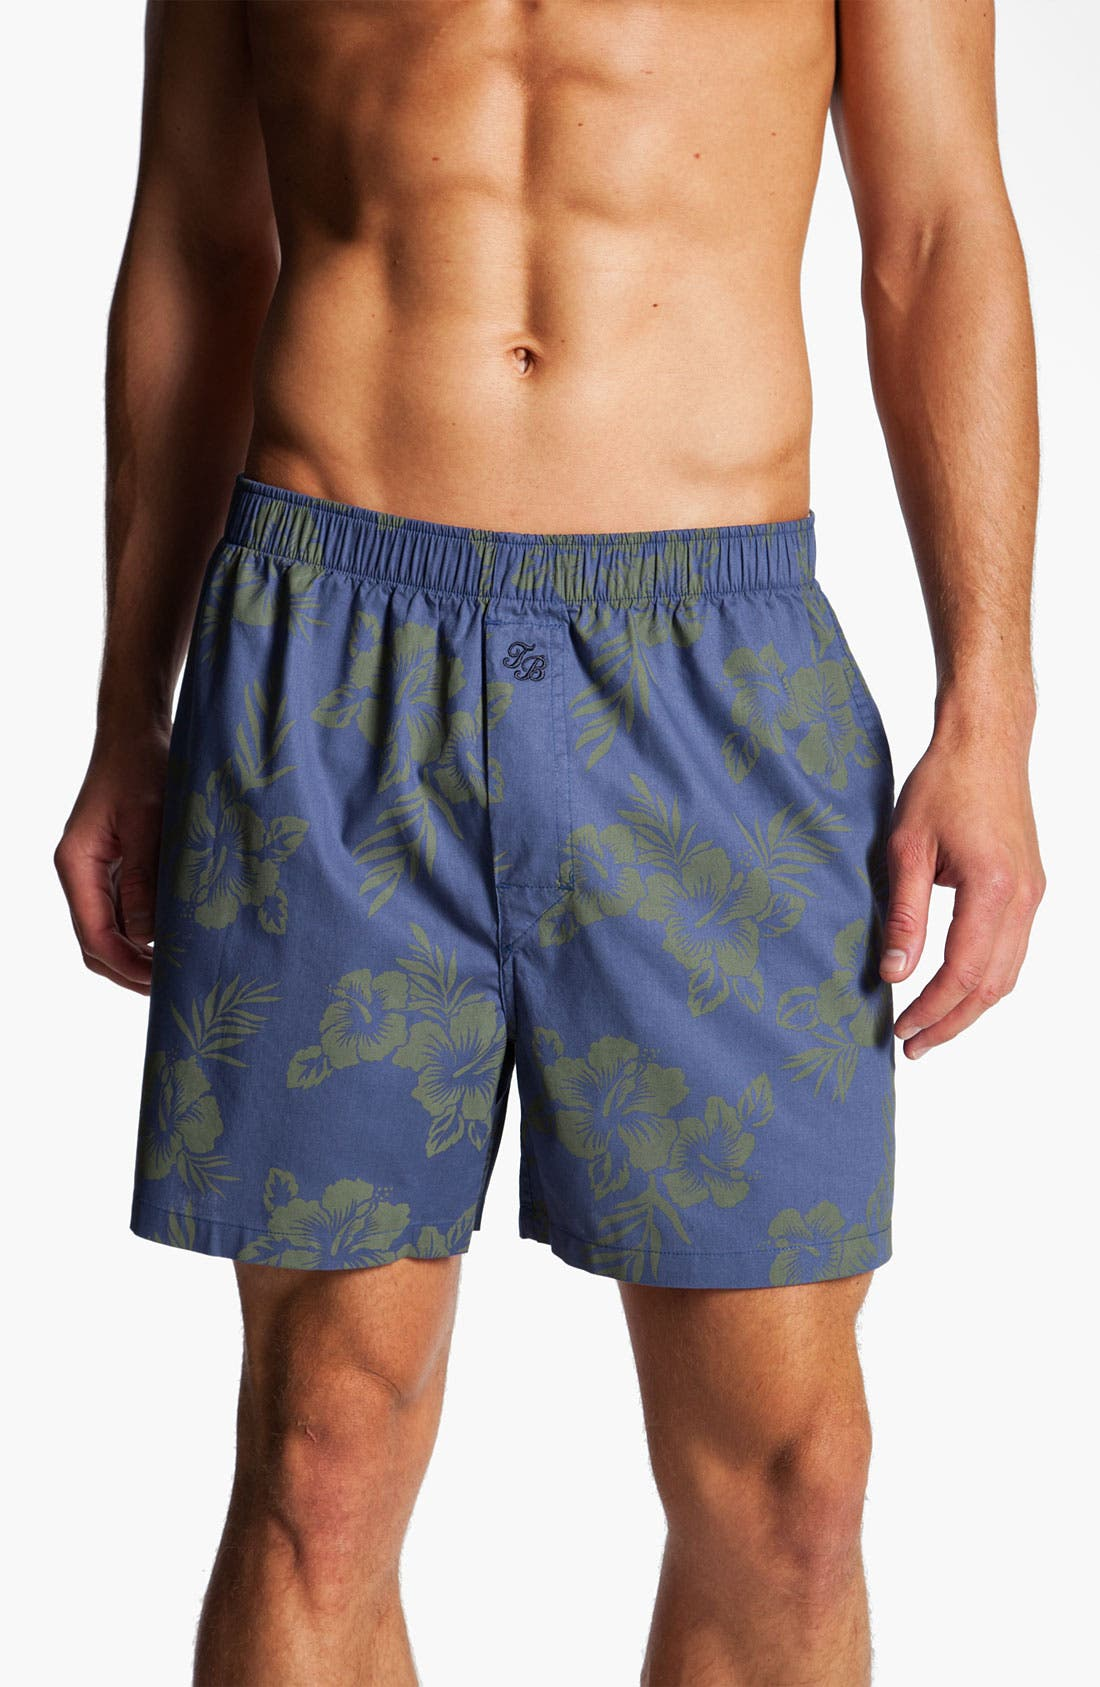 Alternate Image 1 Selected - Tommy Bahama 'Oahu' Floral Print Boxers